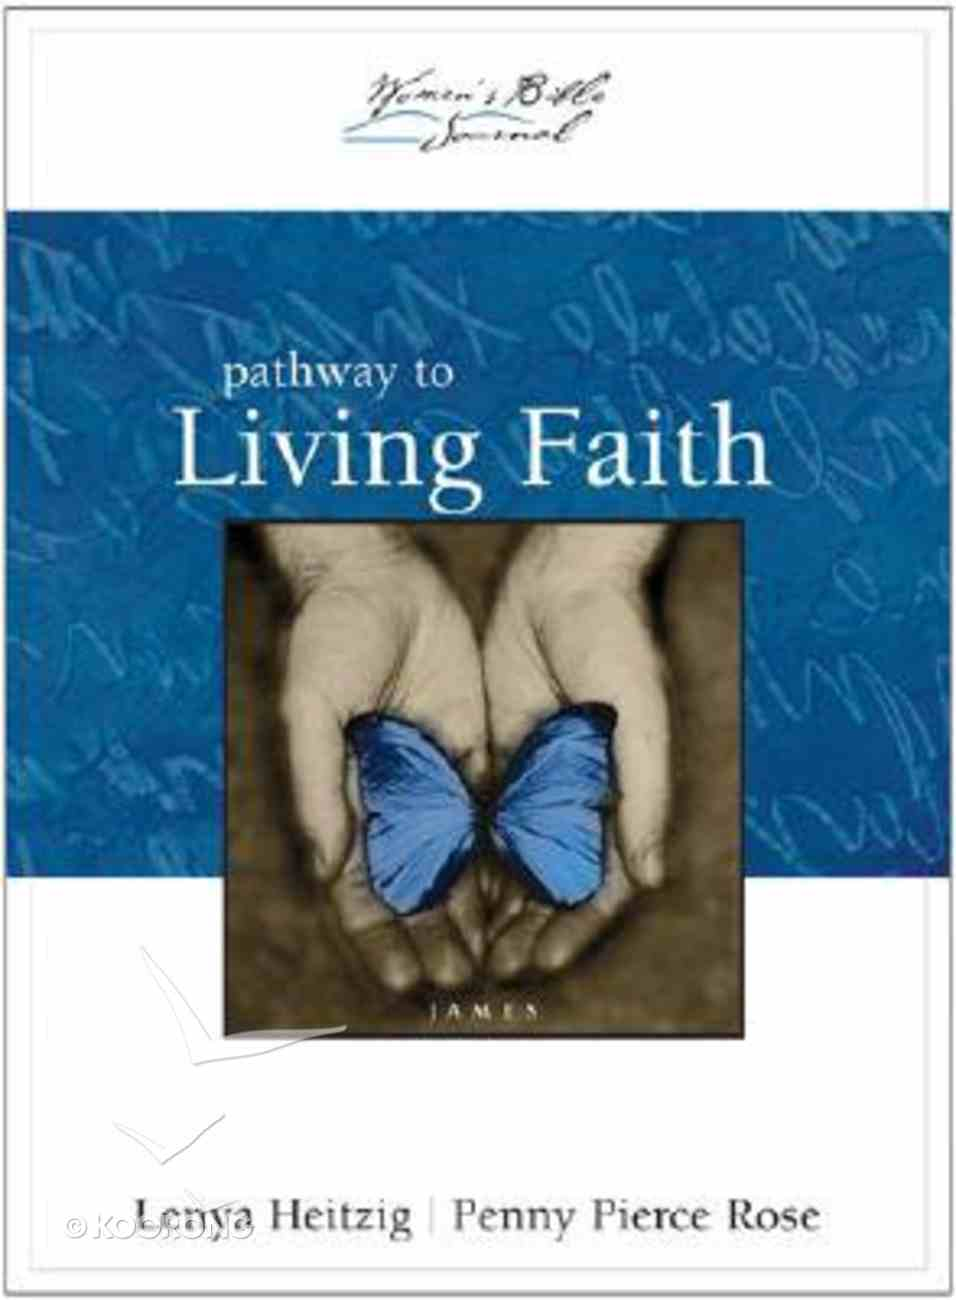 Women's Bible Journal #03: Pathway to Living Faith Paperback